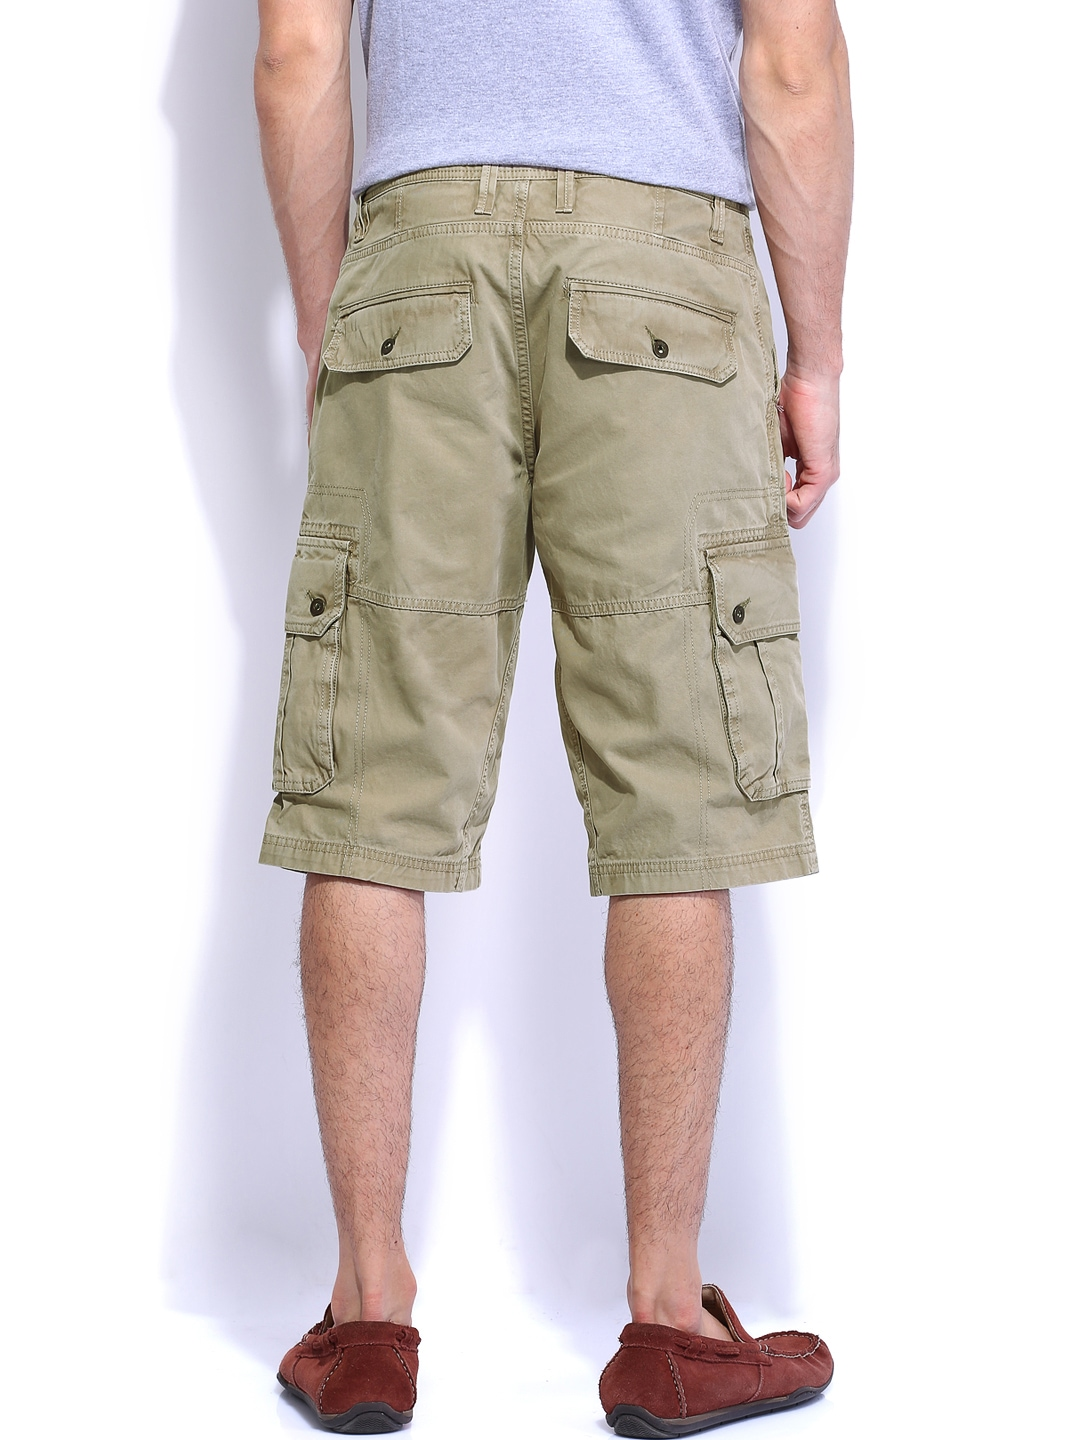 thredUP has amazing prices for Cargo Shorts and other clothing, shoes, and handbags for women, juniors and kids. Free shipping on orders over $